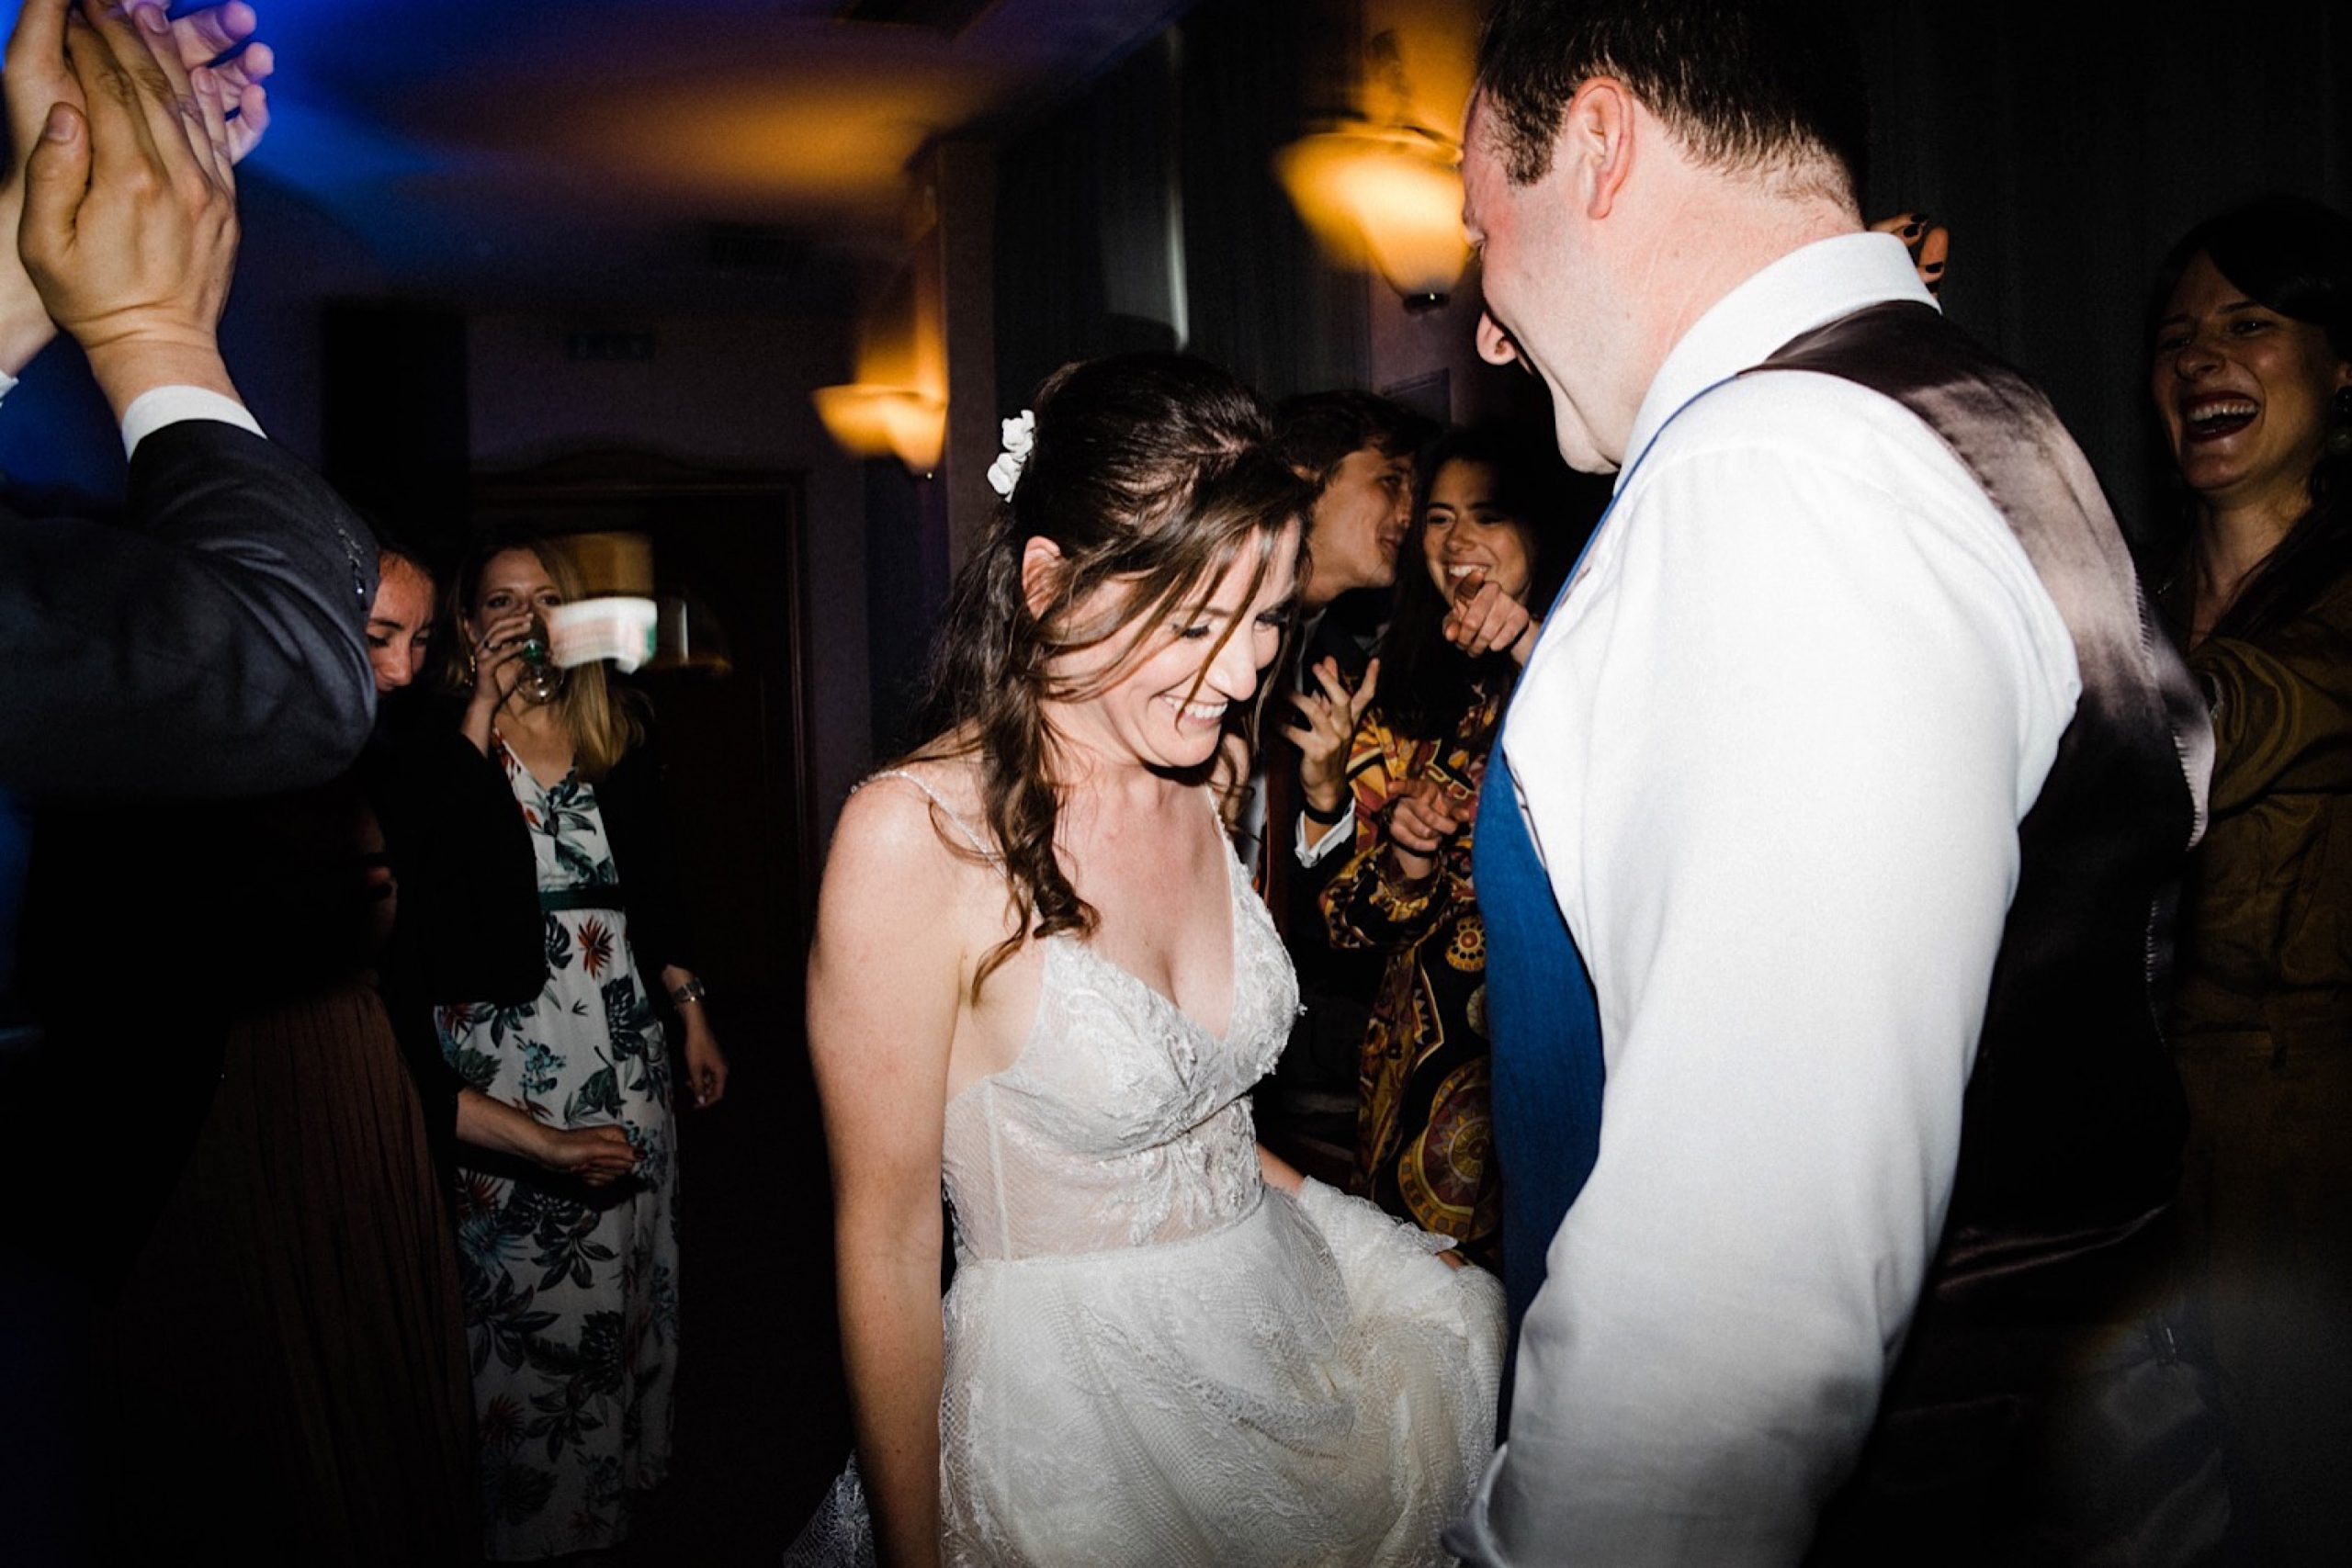 Candid Wedding Photography of the bride & groom dancing together at their Sestri Levante Wedding Reception.